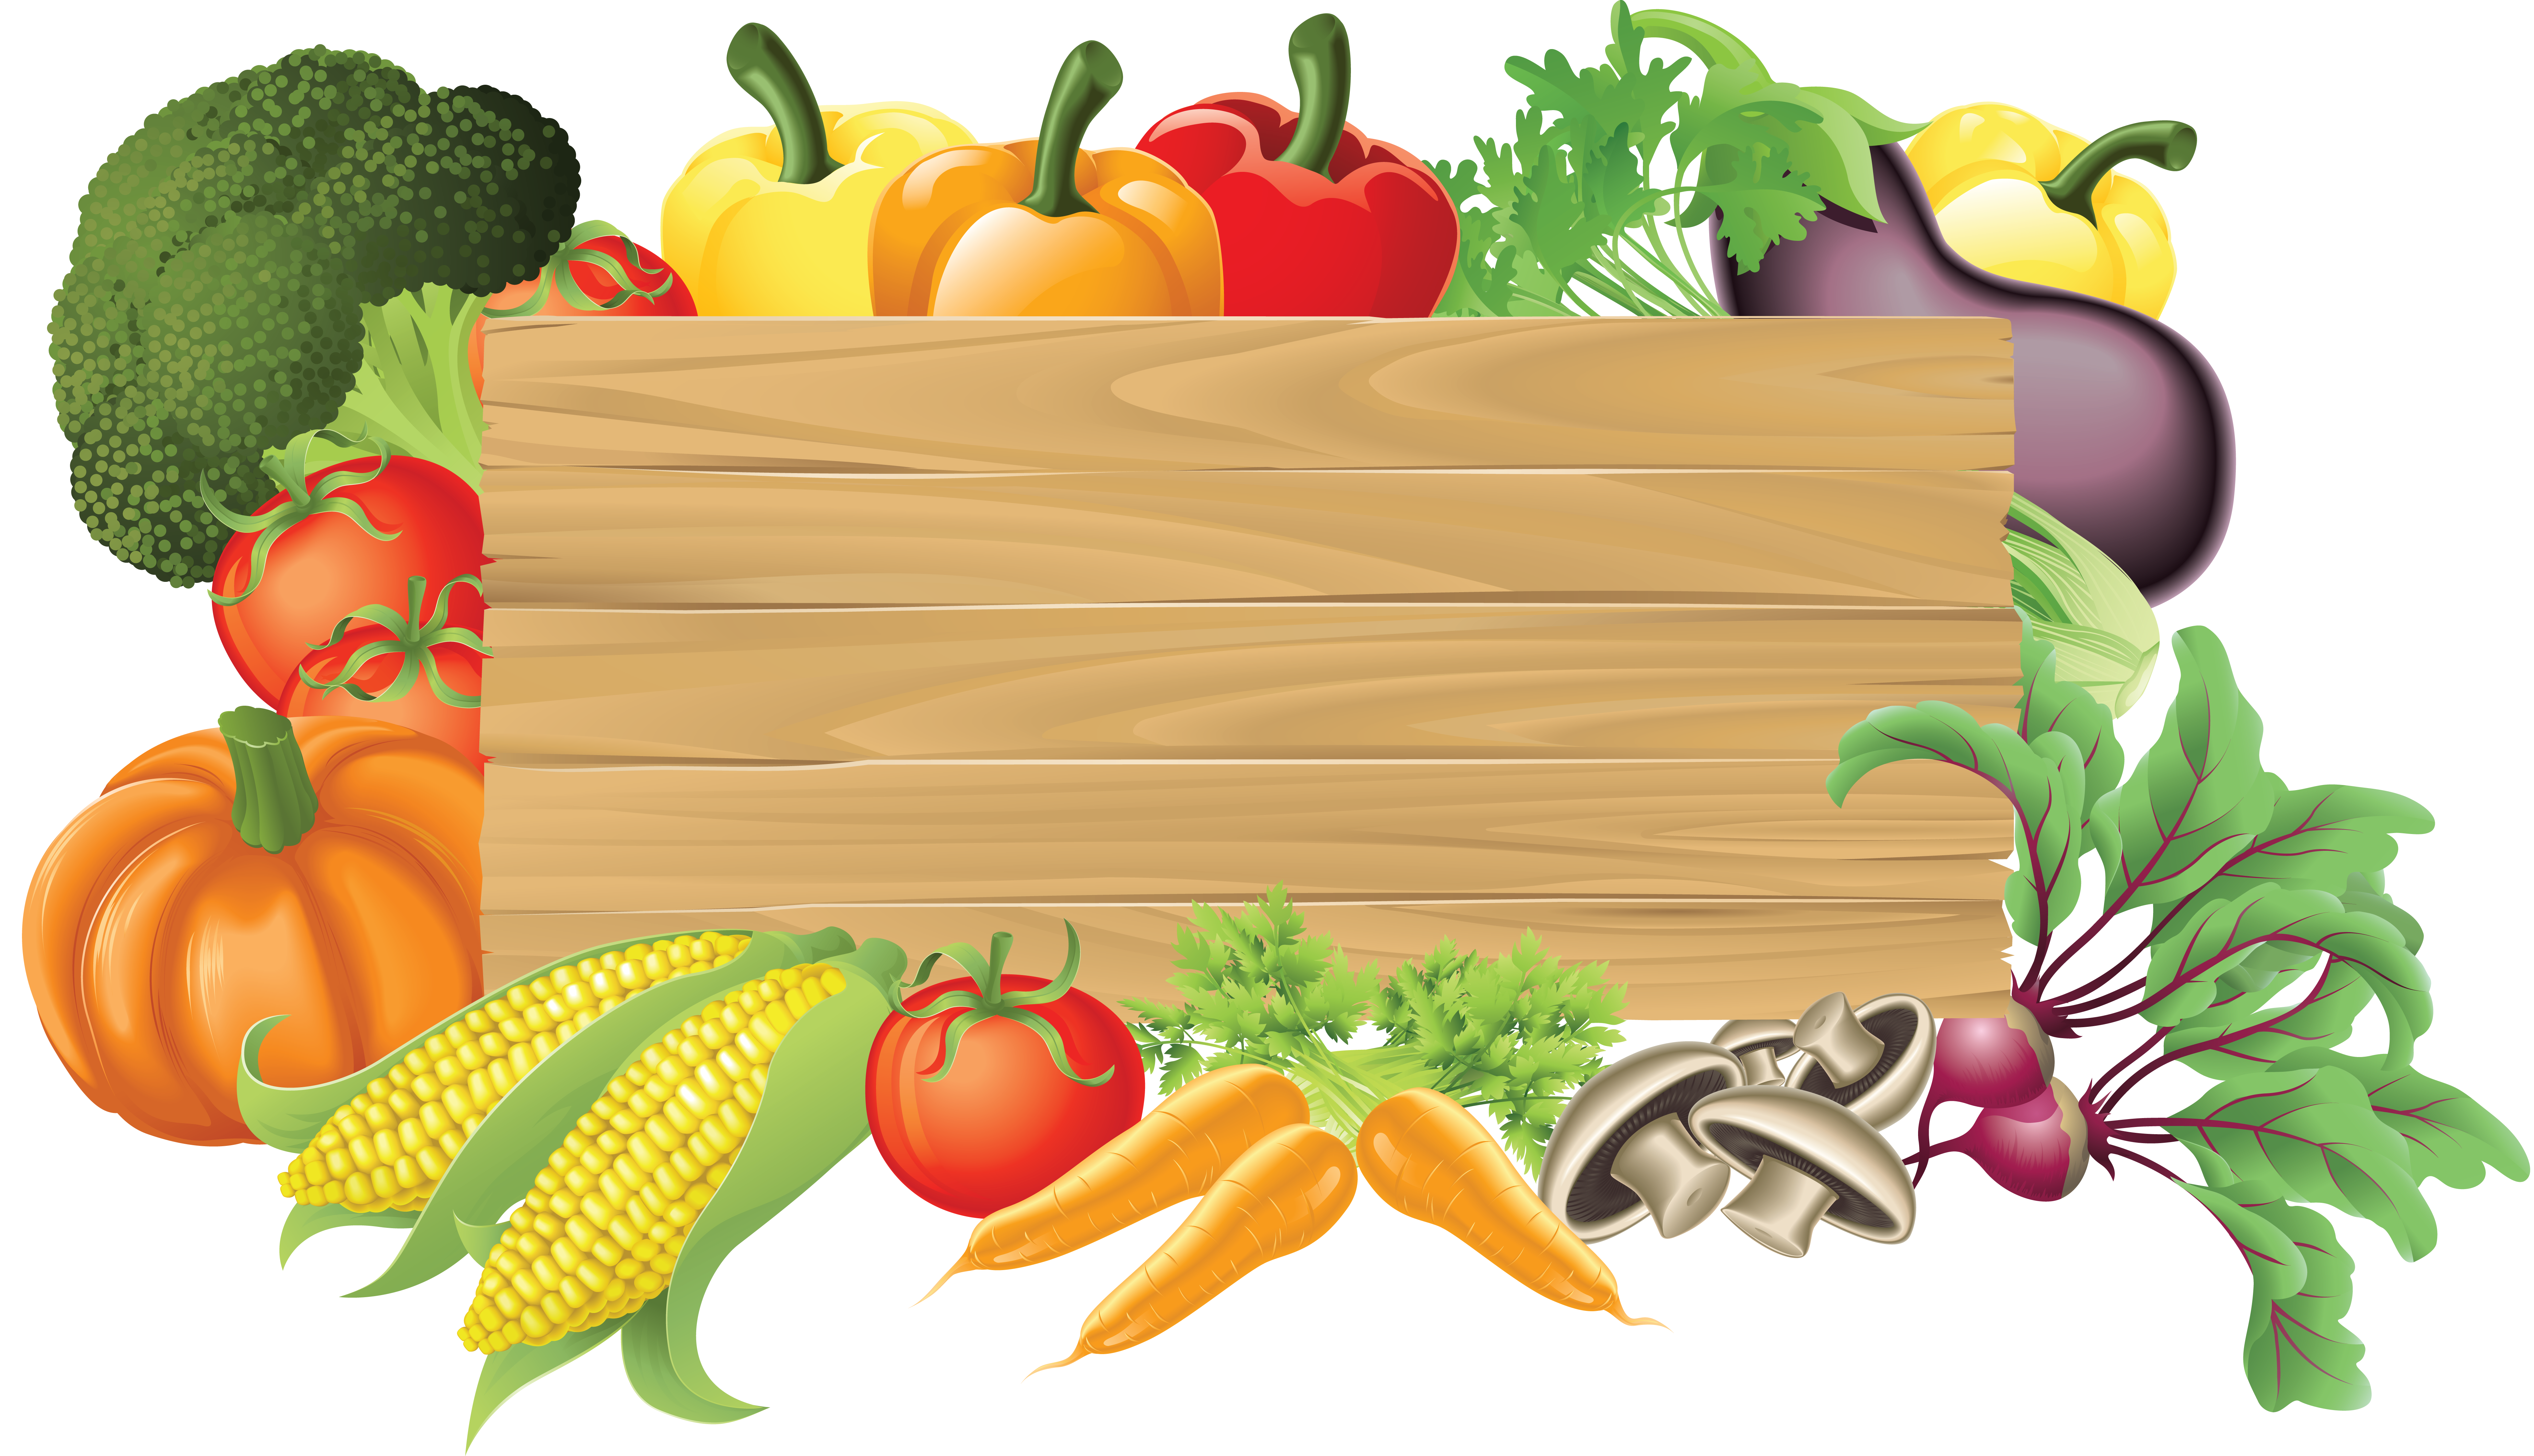 Kitchen garden gardening clip. Vector vegetables fresh vegetable clip art freeuse library